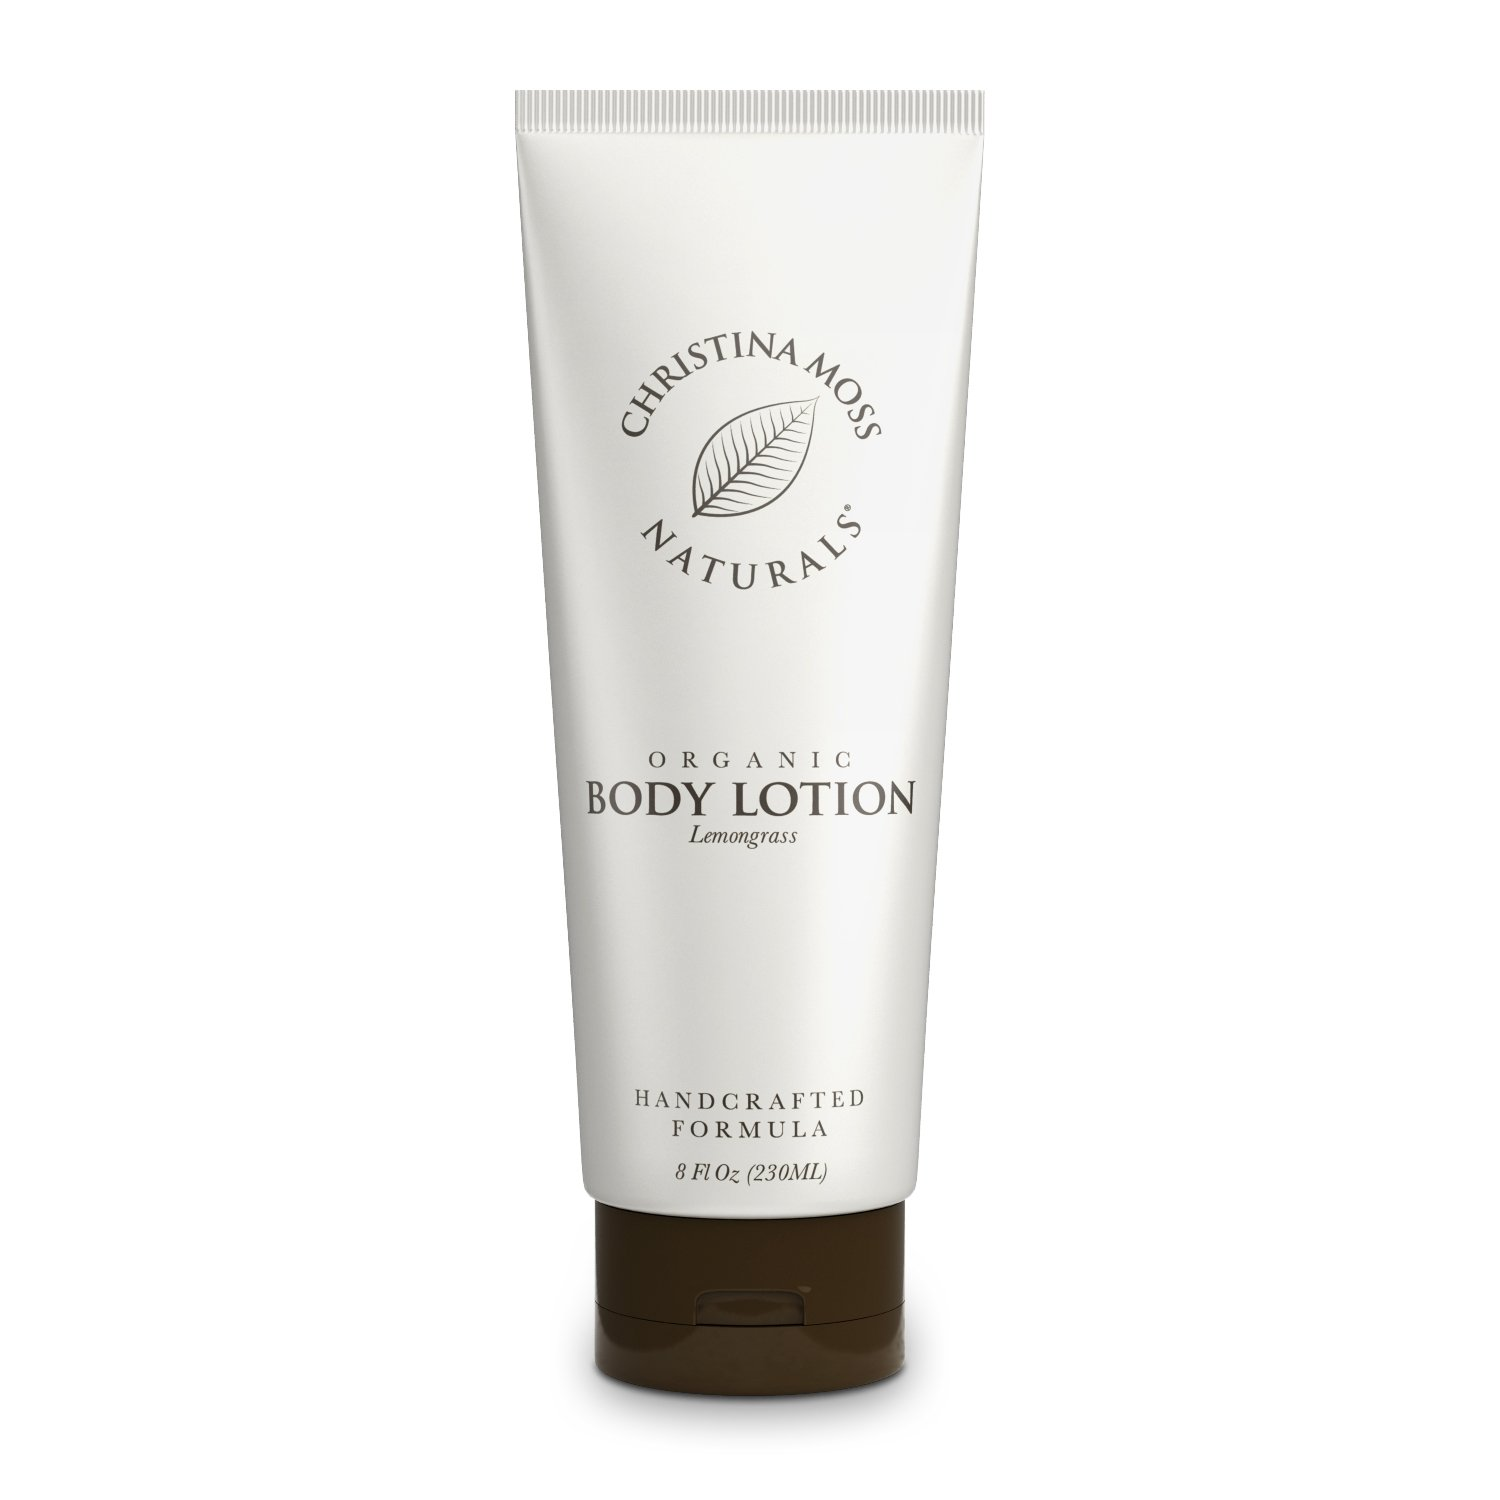 Body Lotion Moisturizer. Organic, Natural Moisturizing Skin Cream for Sensitive, Oily or Severely Dry Skin. Anti-Aging, Anti-Wrinkle, No Toxic Chemicals. For Women & Men. Christina Moss Naturals. 8oz.